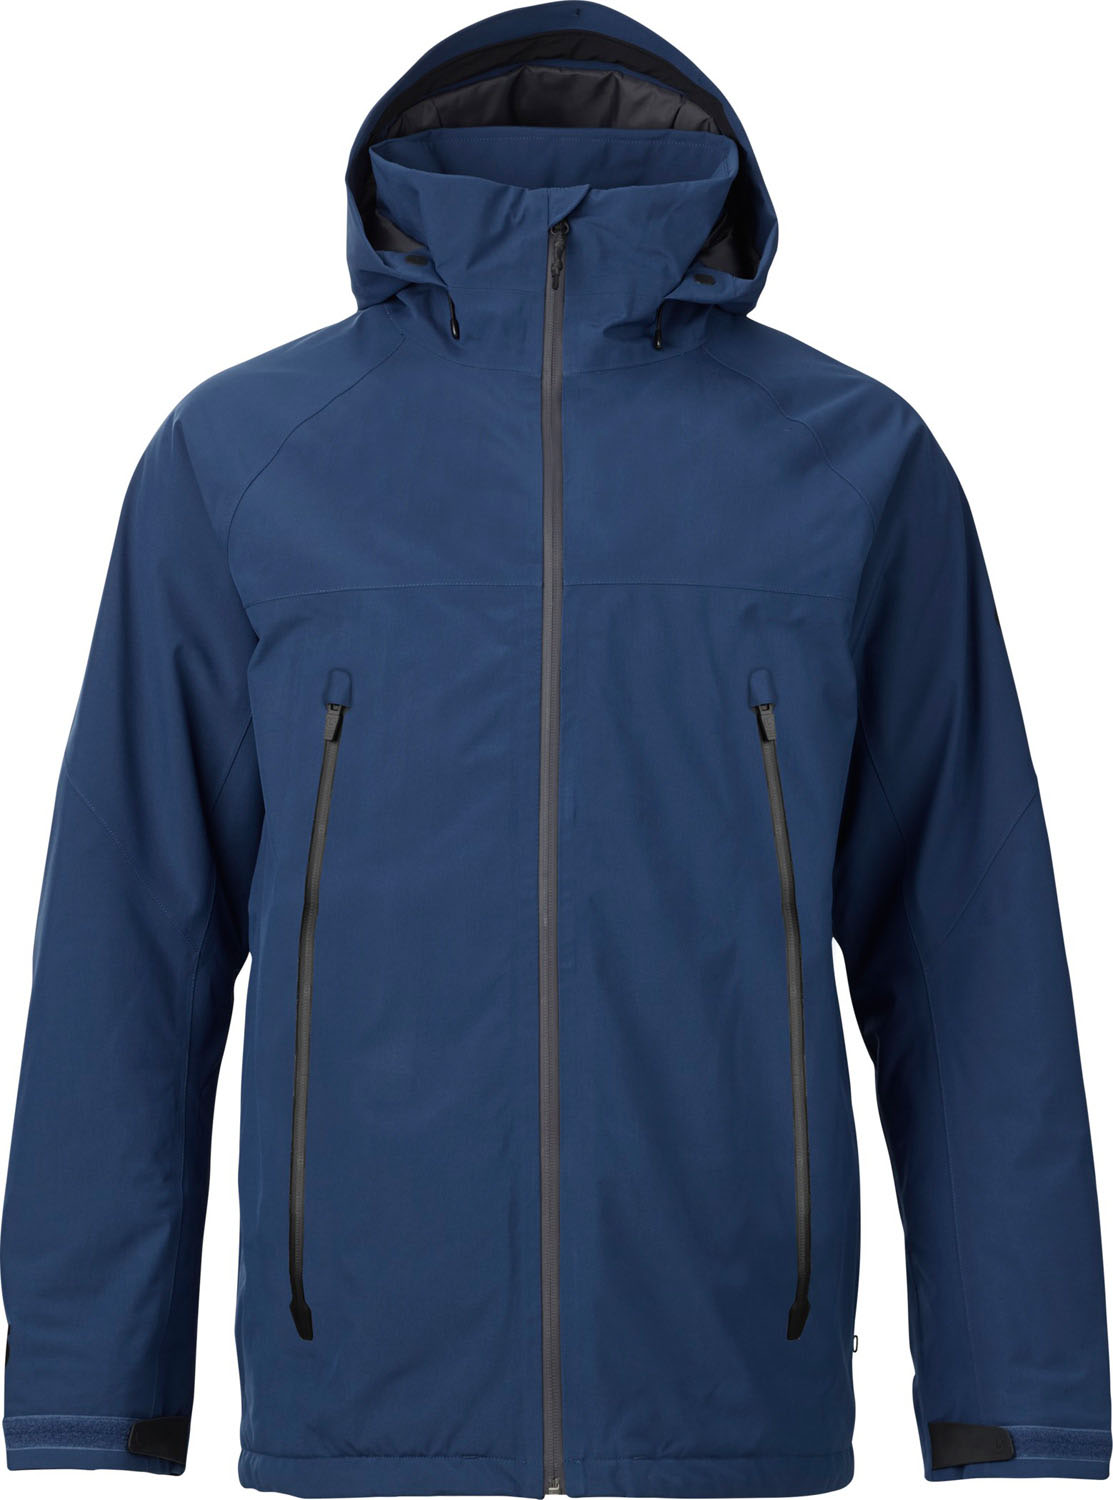 Burton Ether Jacket Review The Good Ride